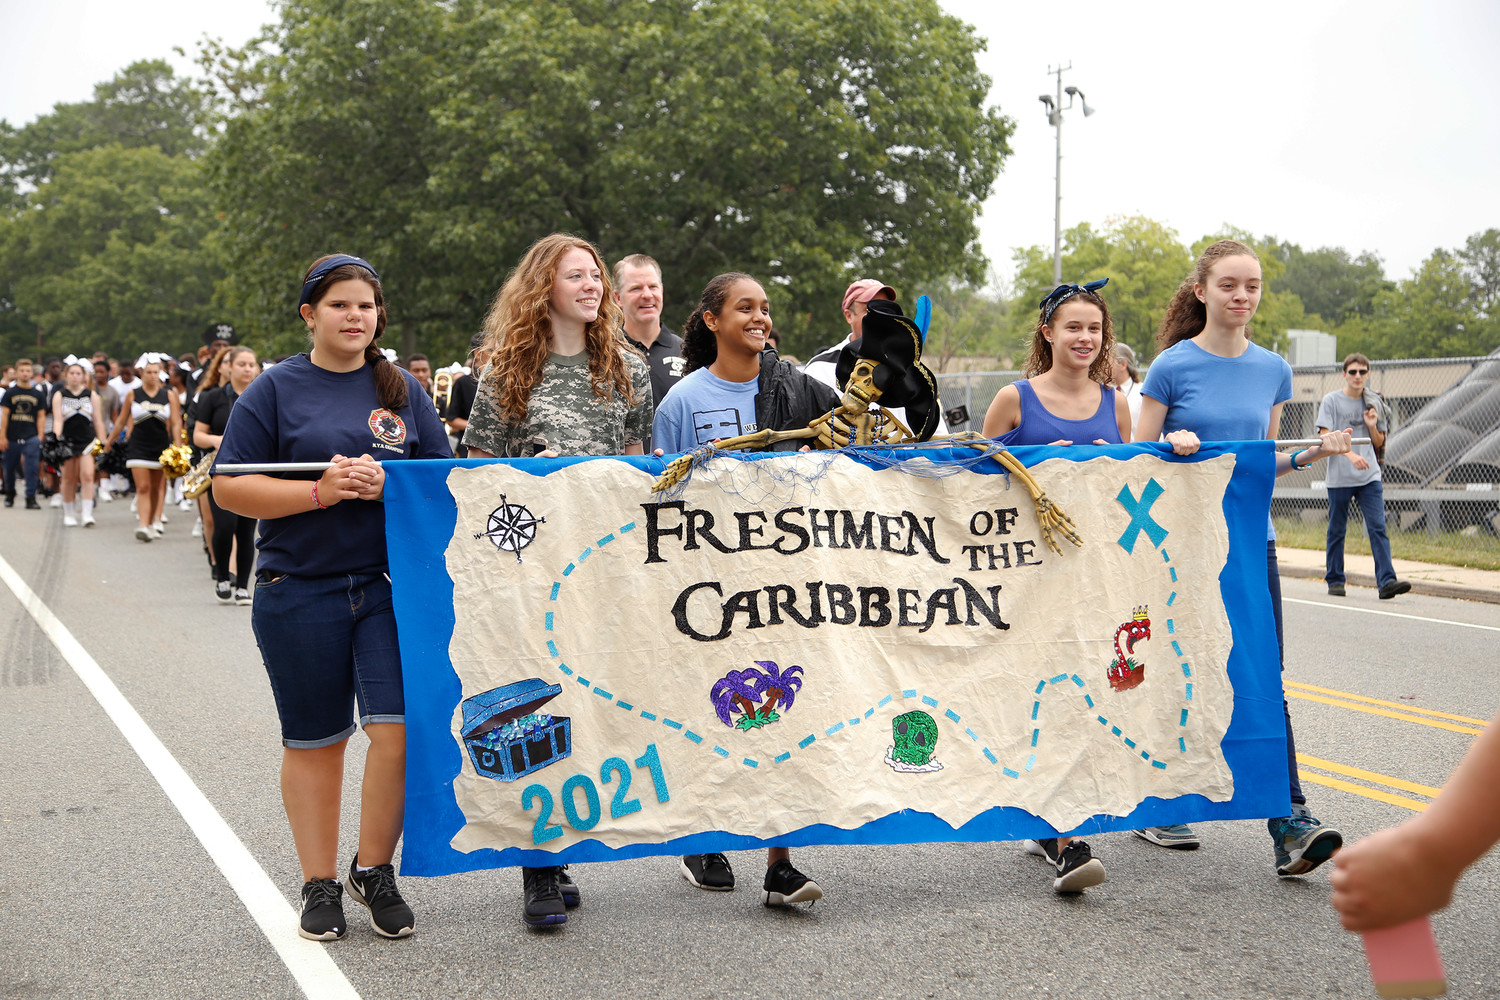 Freshmen of the Caribbean represented the class of 2021 at the parade.